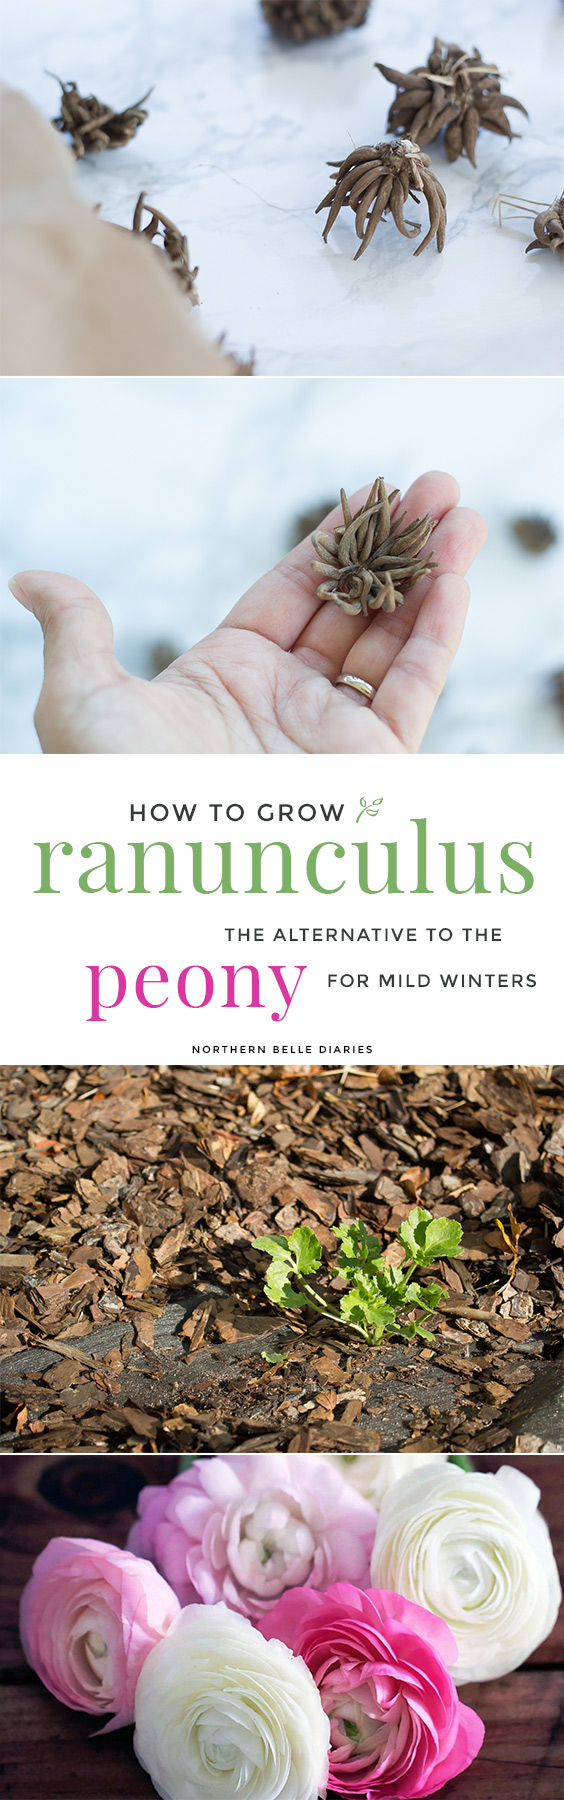 How to Grow Ranunculus | The Alternative to Peonies for Mild Winters - Do you love peonies and want to grow them in your garden but live in warm coastal areas? Try planting ranunculus, aka Persian buttercups. Inexpensive and long-blooming, your vases will be overflowing for weeks!